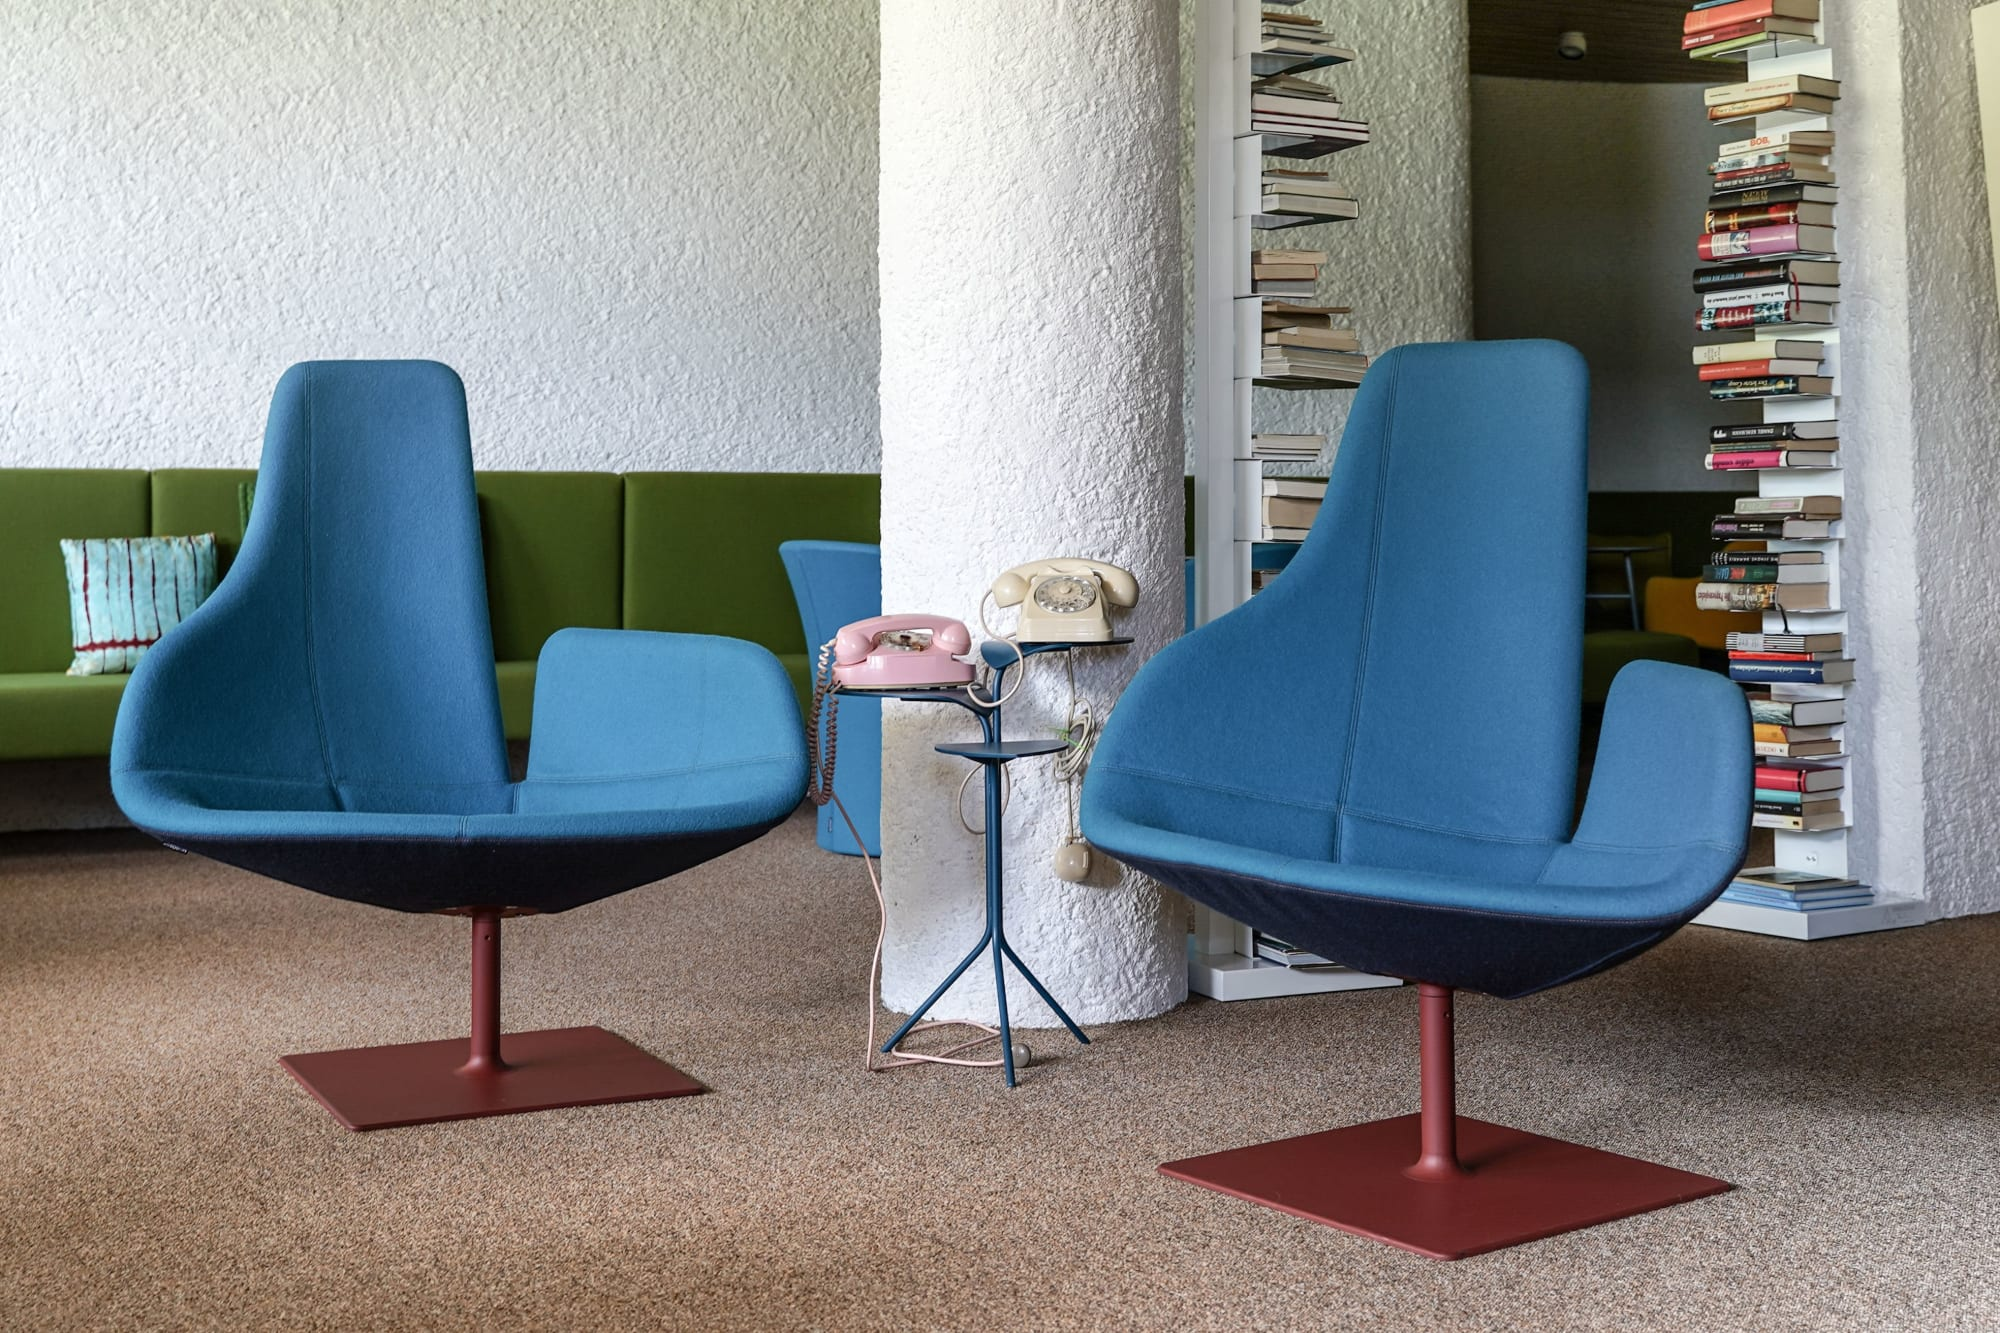 Modern retro funky blue chairs